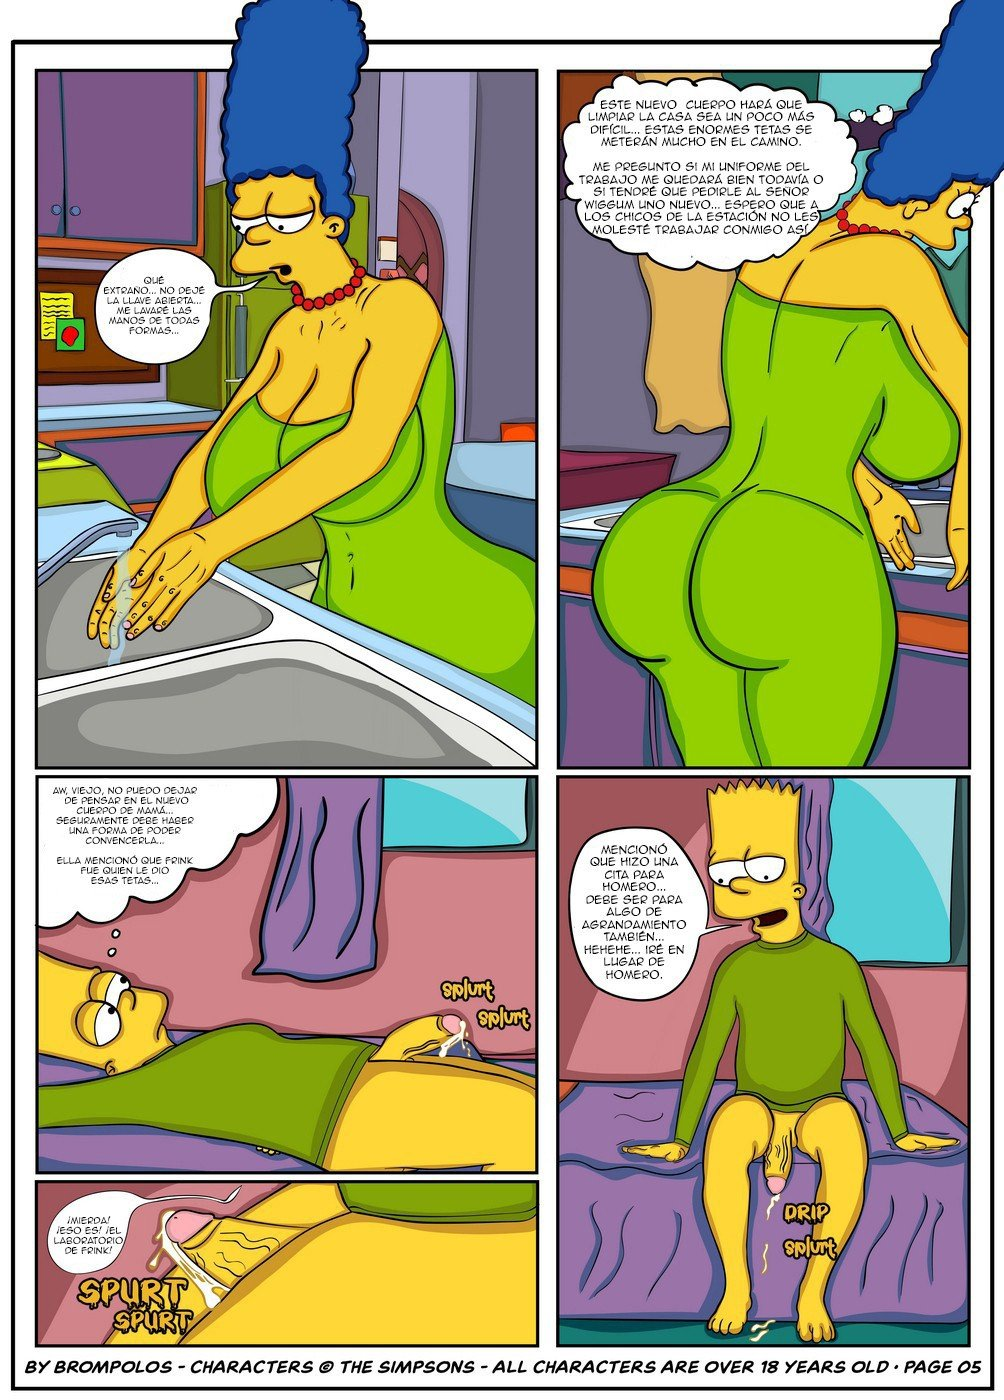 The Simpsons are The Sexenteins - 6